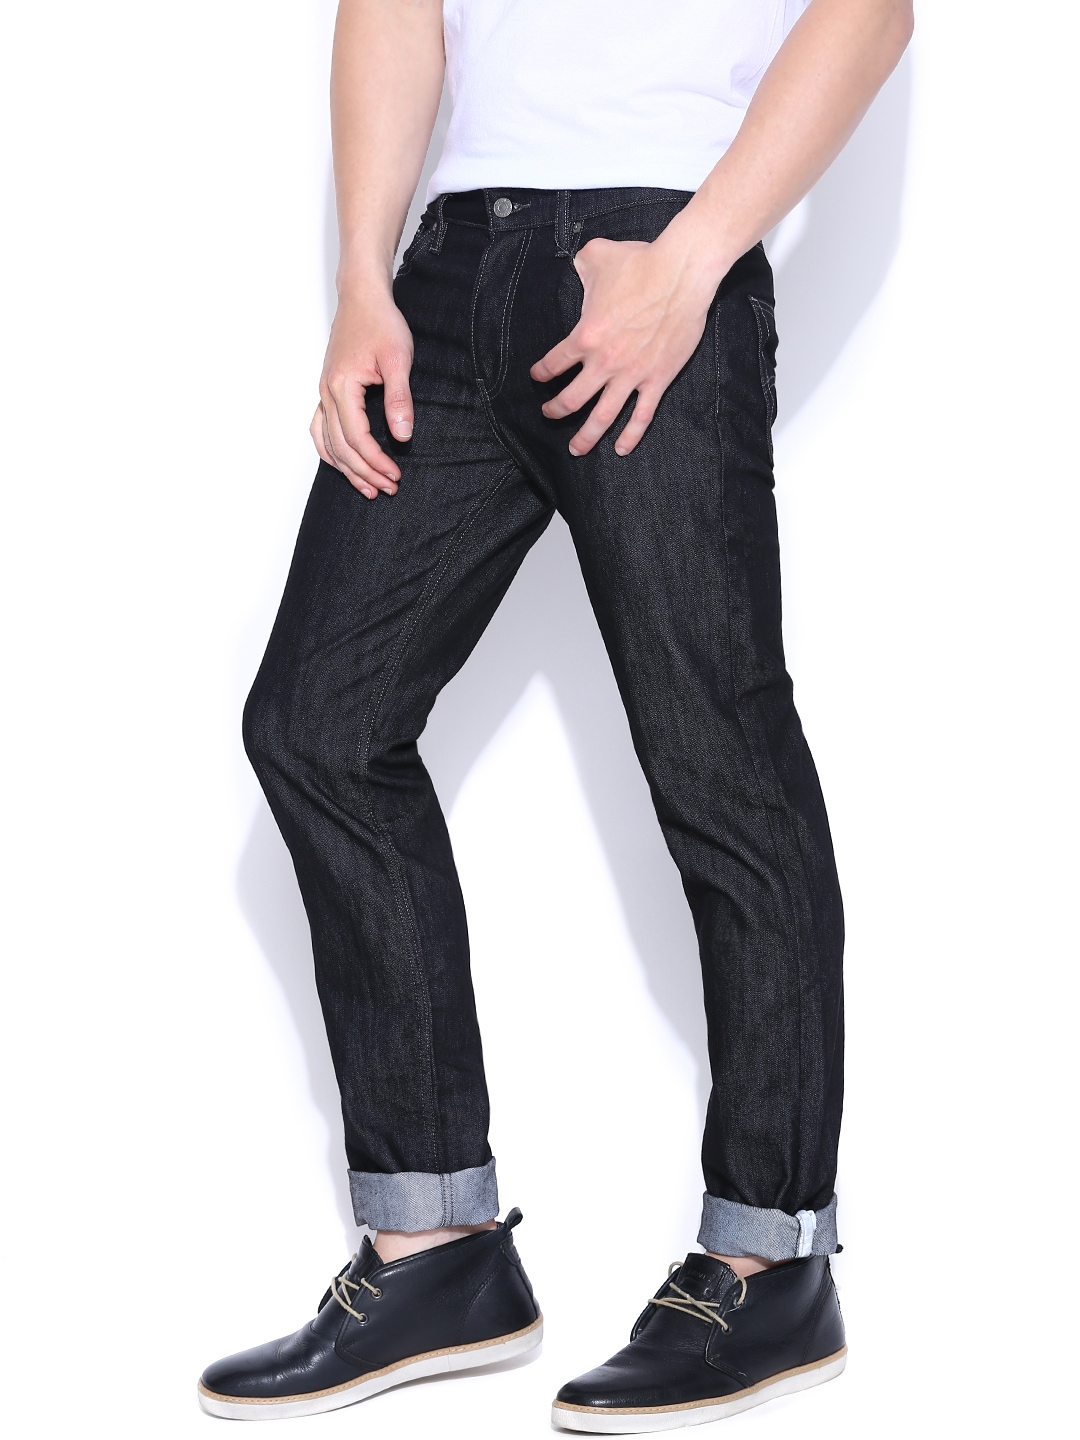 Shop Tillys for the latest in Levi's clothing & accessories. Price $25 - $50 $50 - $ Over $ Close. show items in store. check other stores. Go. LEVI'S Mens Slim Jeans $ $ 30% Off NOW: $ LEVI'S Witches Castle Mens Slim Ripped Jeans $ $